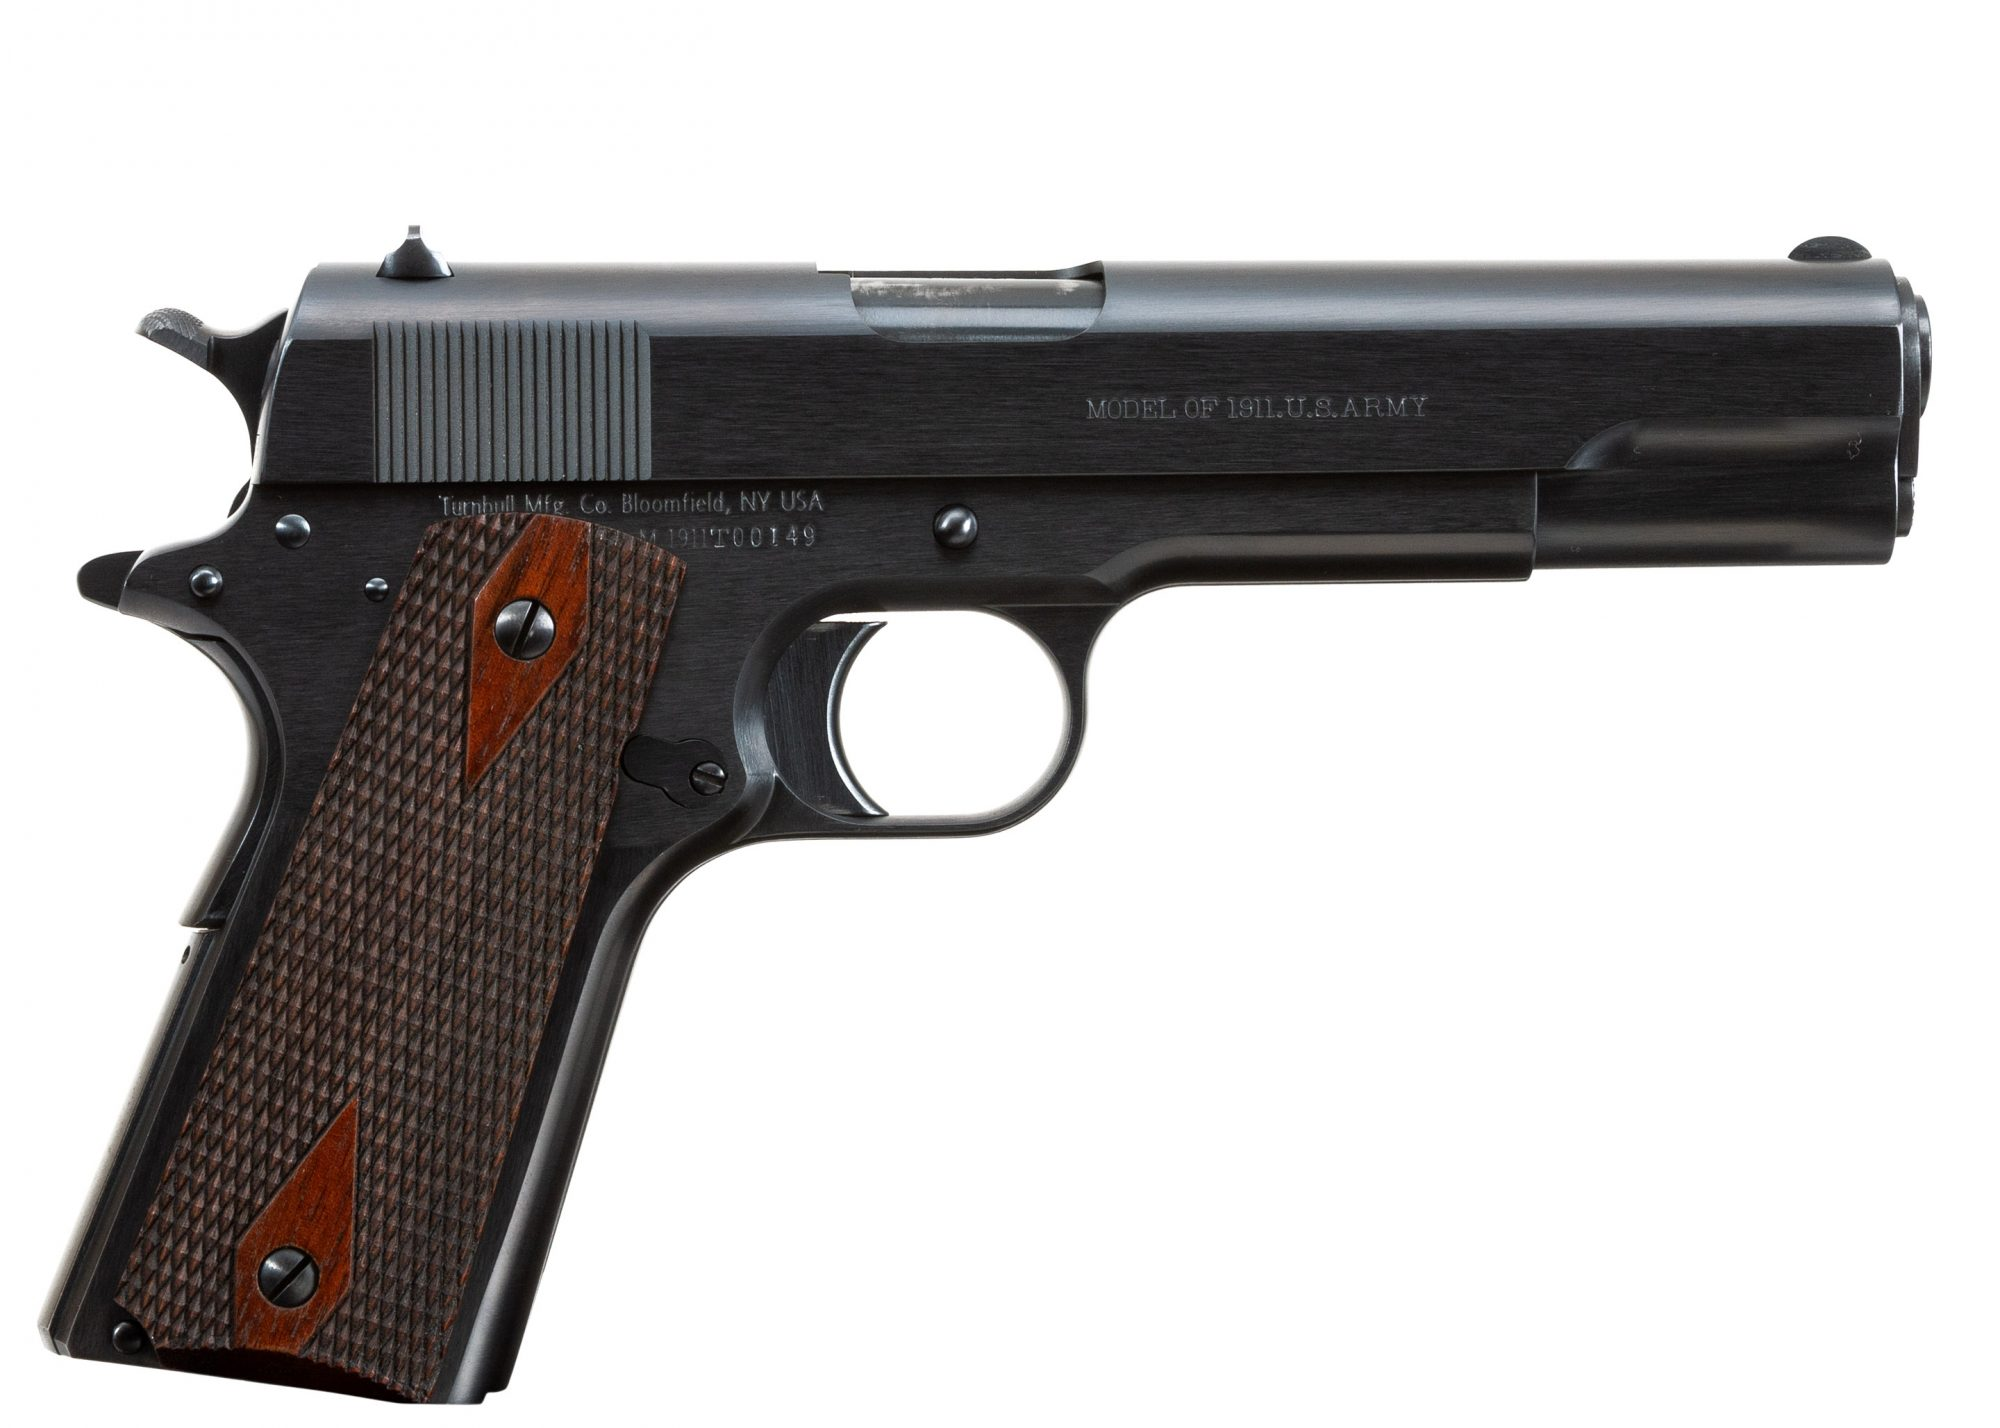 Photo of a pre-owned Turnbull Model 1911 U.S. Army with WWI-style frame, for sale by Turnbull Restoration of Bloomfield, NY